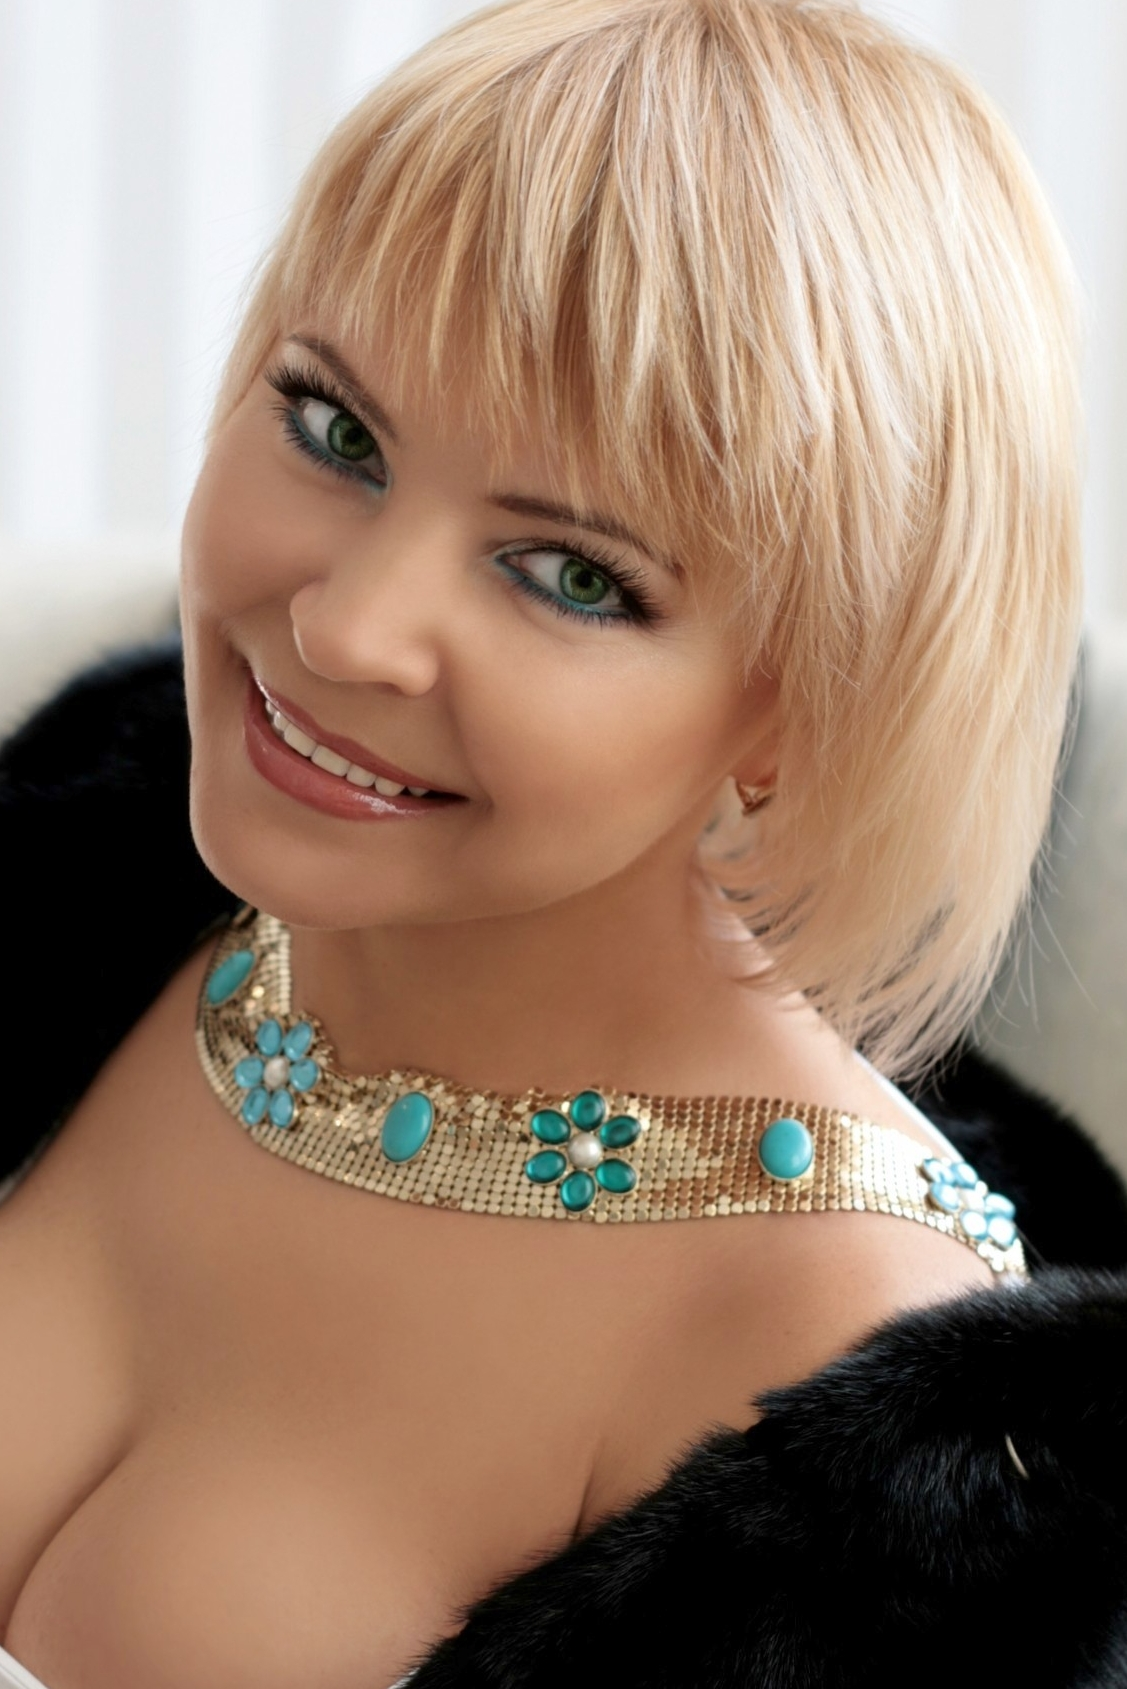 Ukrainian girl Natalia,50 years old with blue eyes and blonde hair.